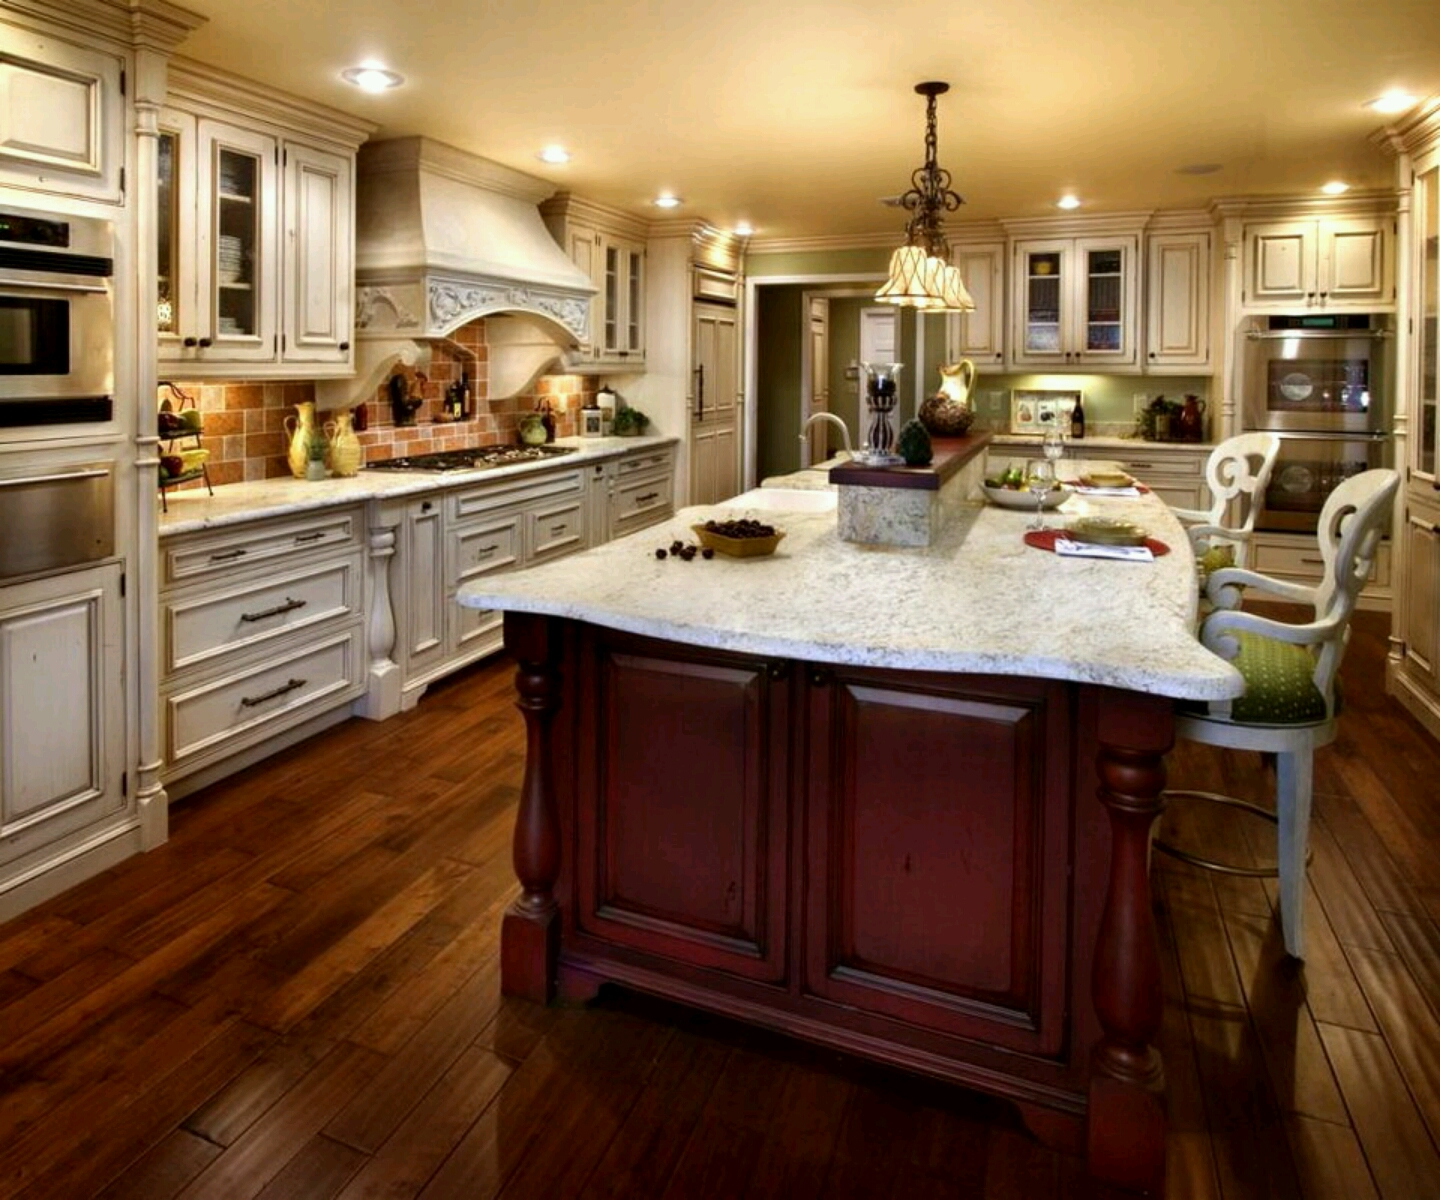 Luxury kitchen modern kitchen cabinets designs for Modern classic kitchen design ideas